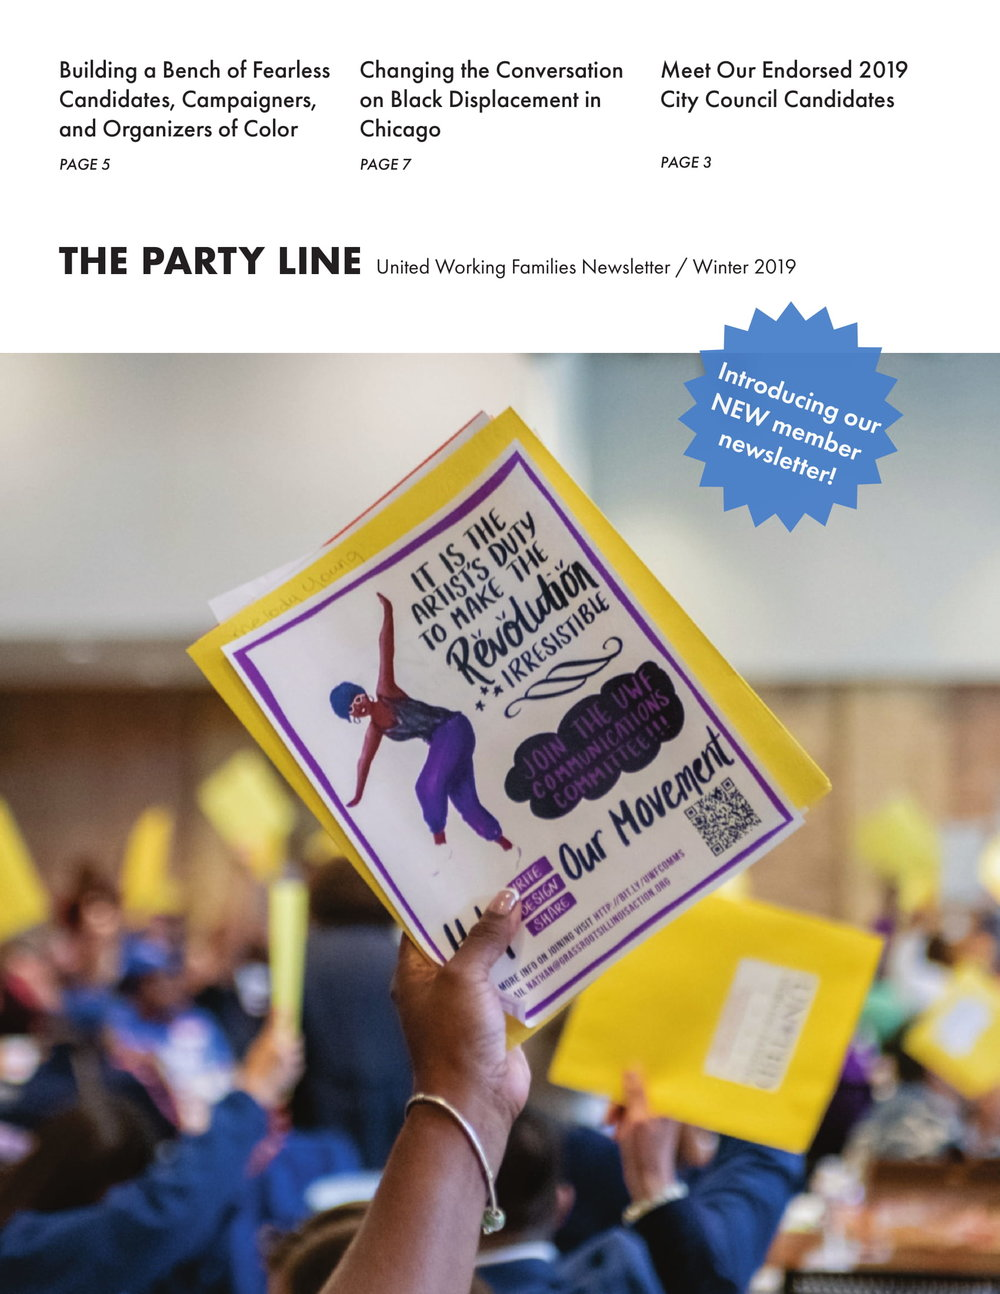 MEMBER NEWSLETTERS ARE HERE! - The Party Line, our new member newsletter, is here! Click here to download a copy or join today to receive your next issue in the mail.